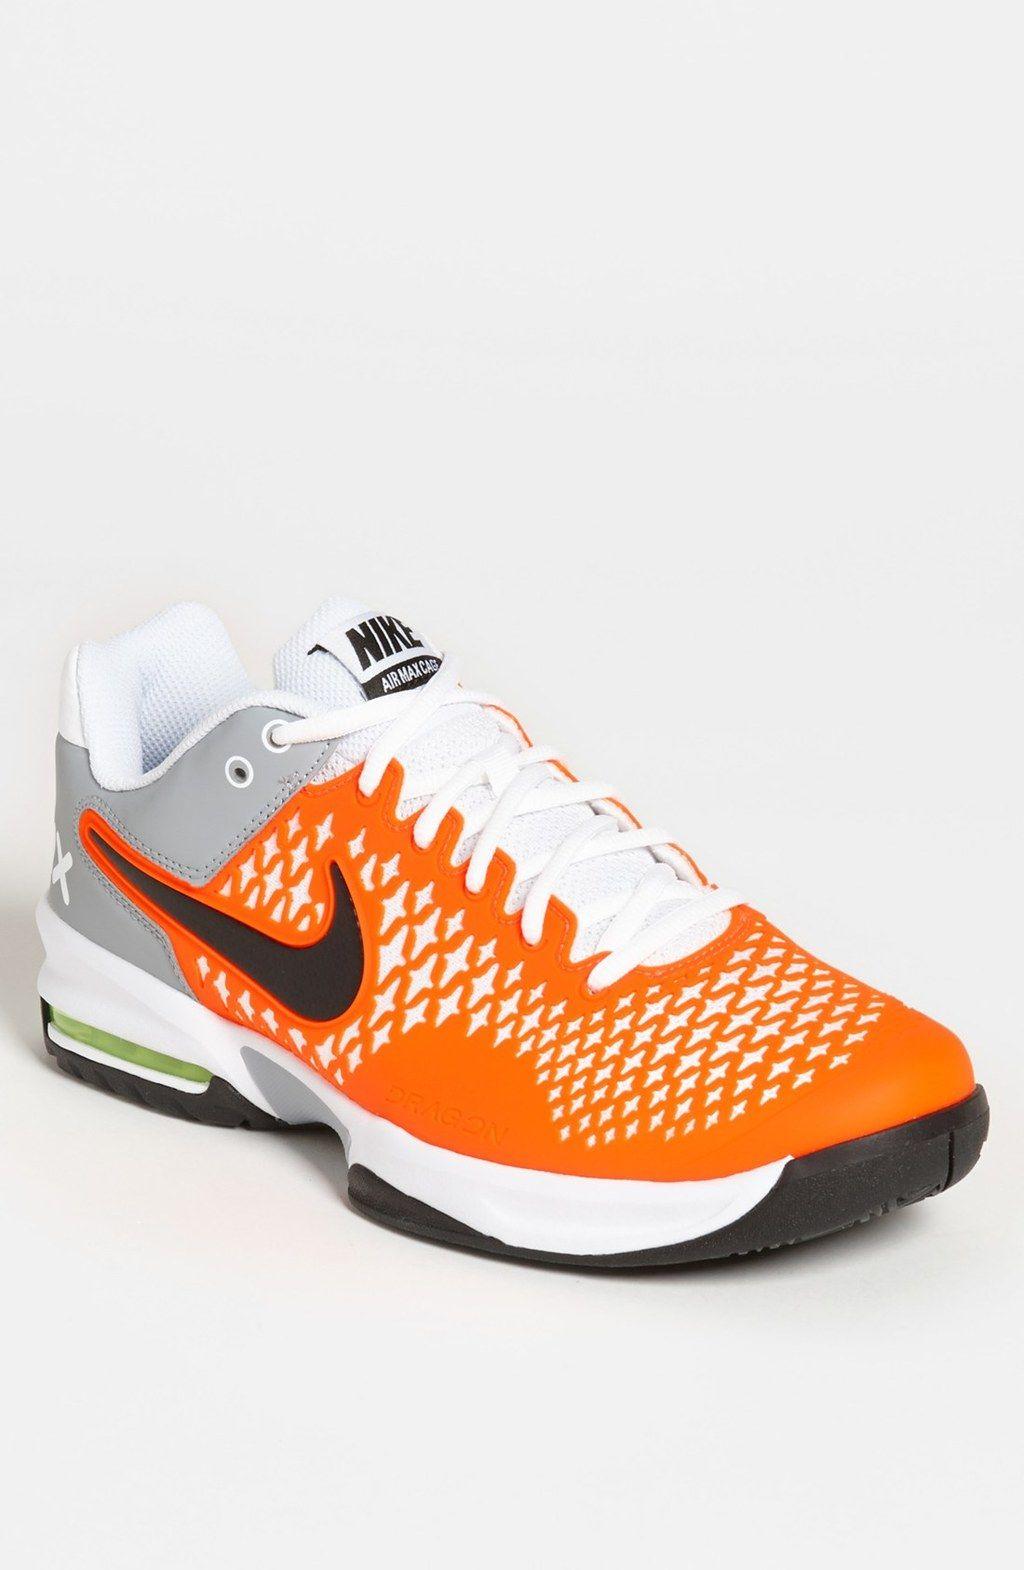 Nike Air Max Soles With Circles   SPORTCAMP 96367470e6a3